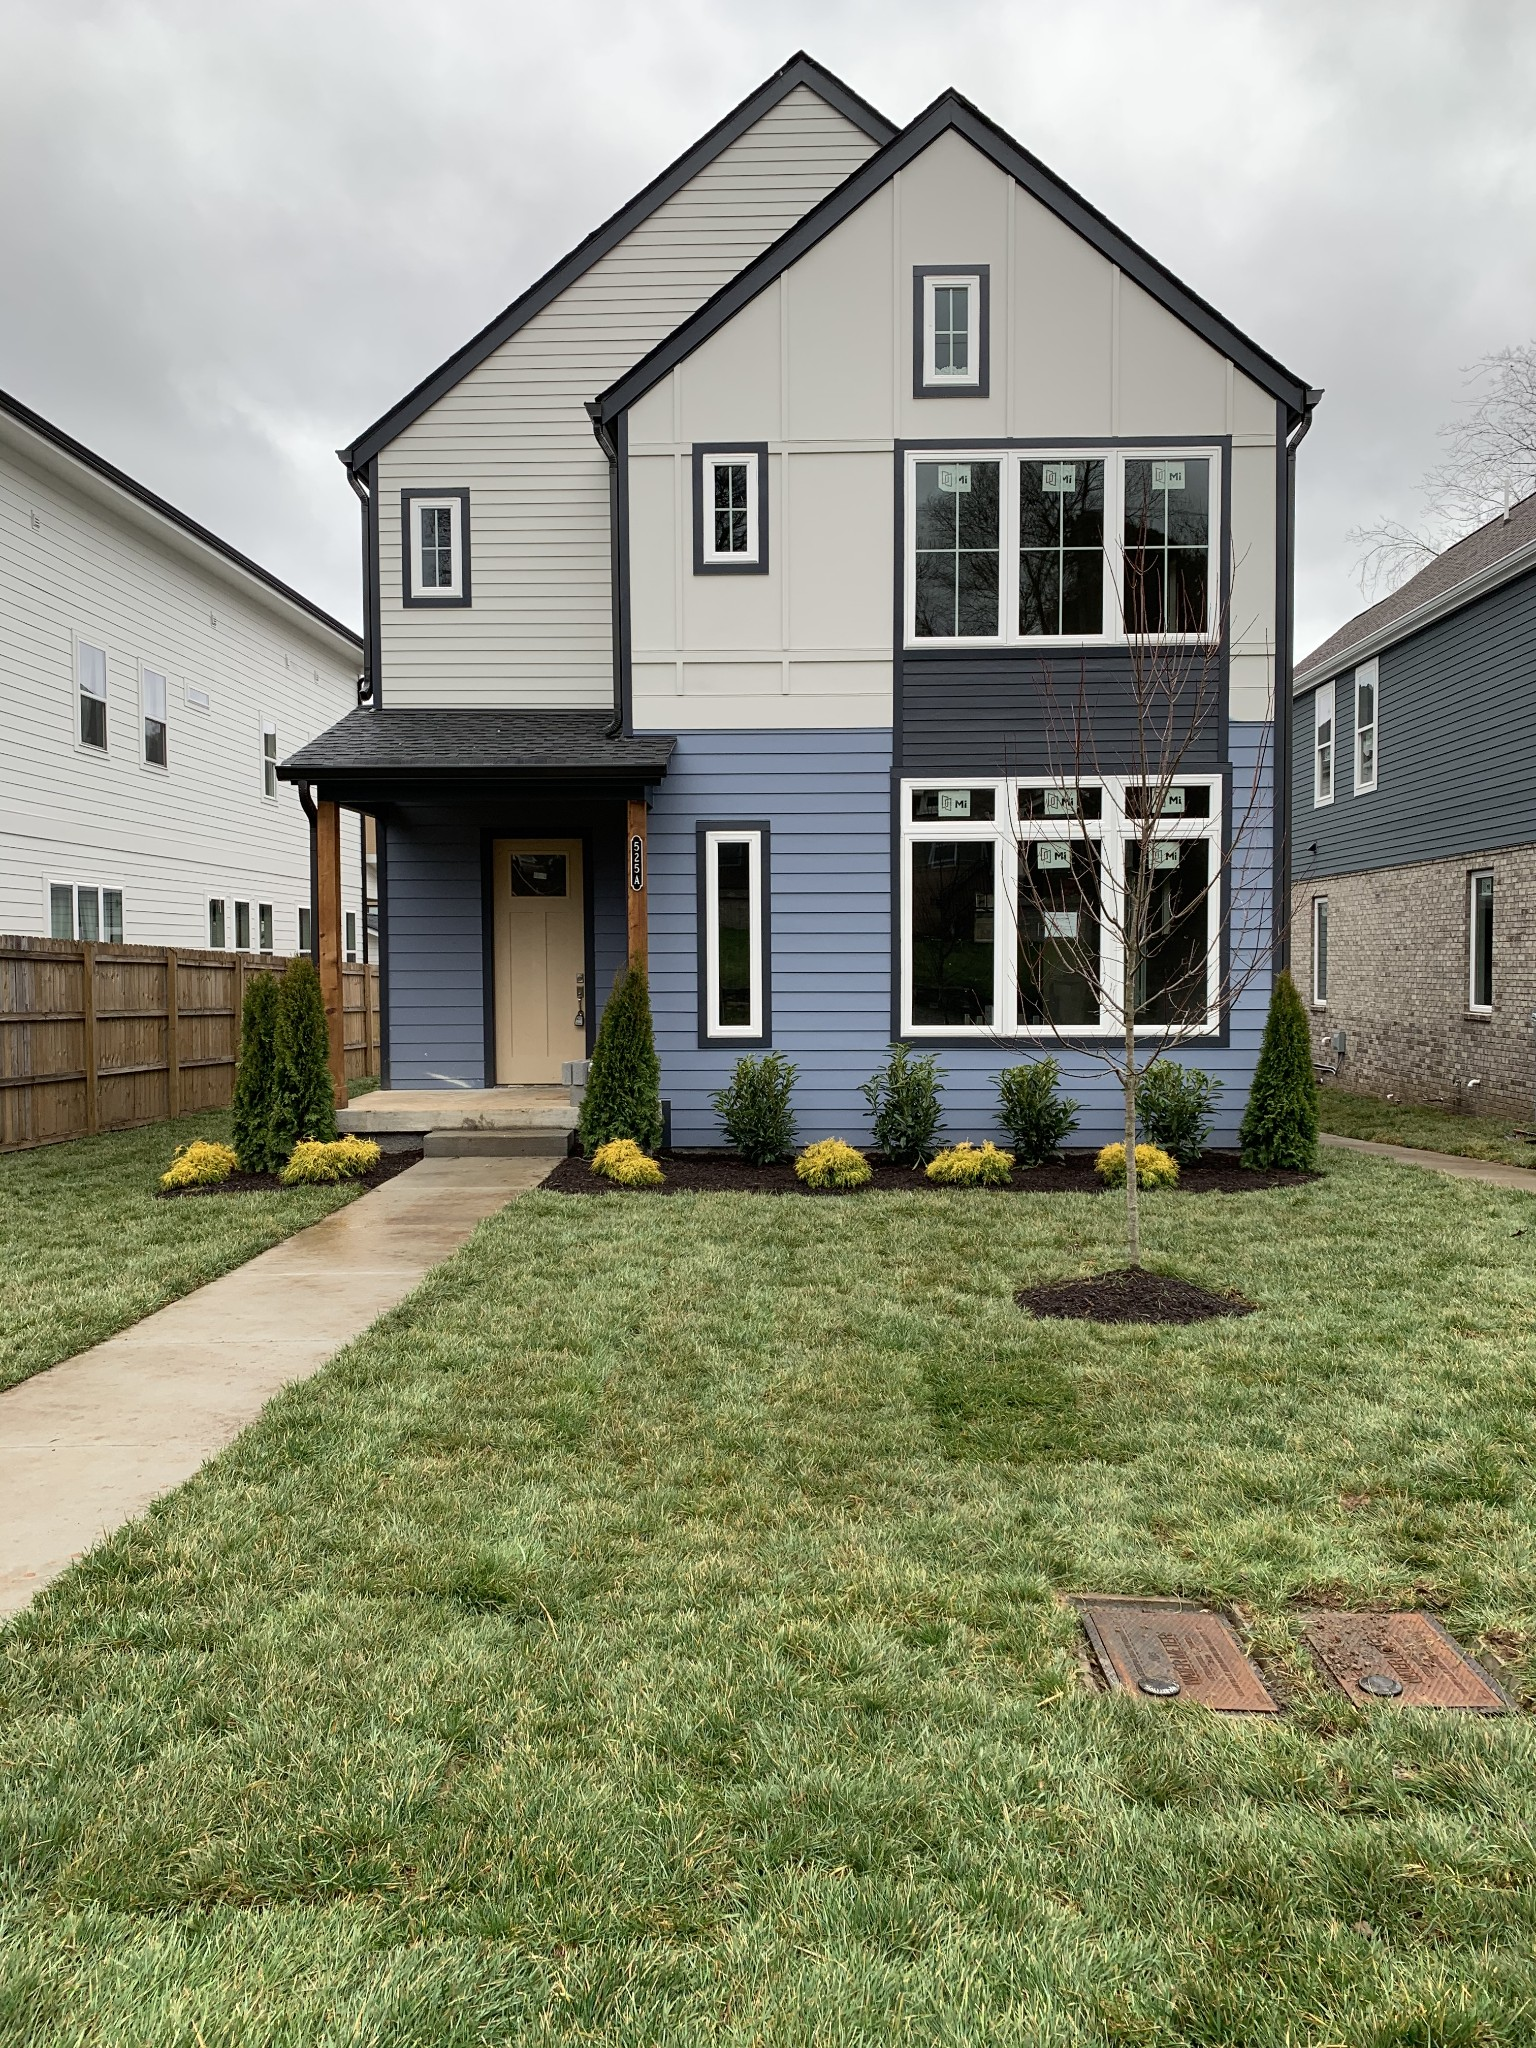 525A Moore Ave, Nashville - Midtown in Davidson County County, TN 37203 Home for Sale